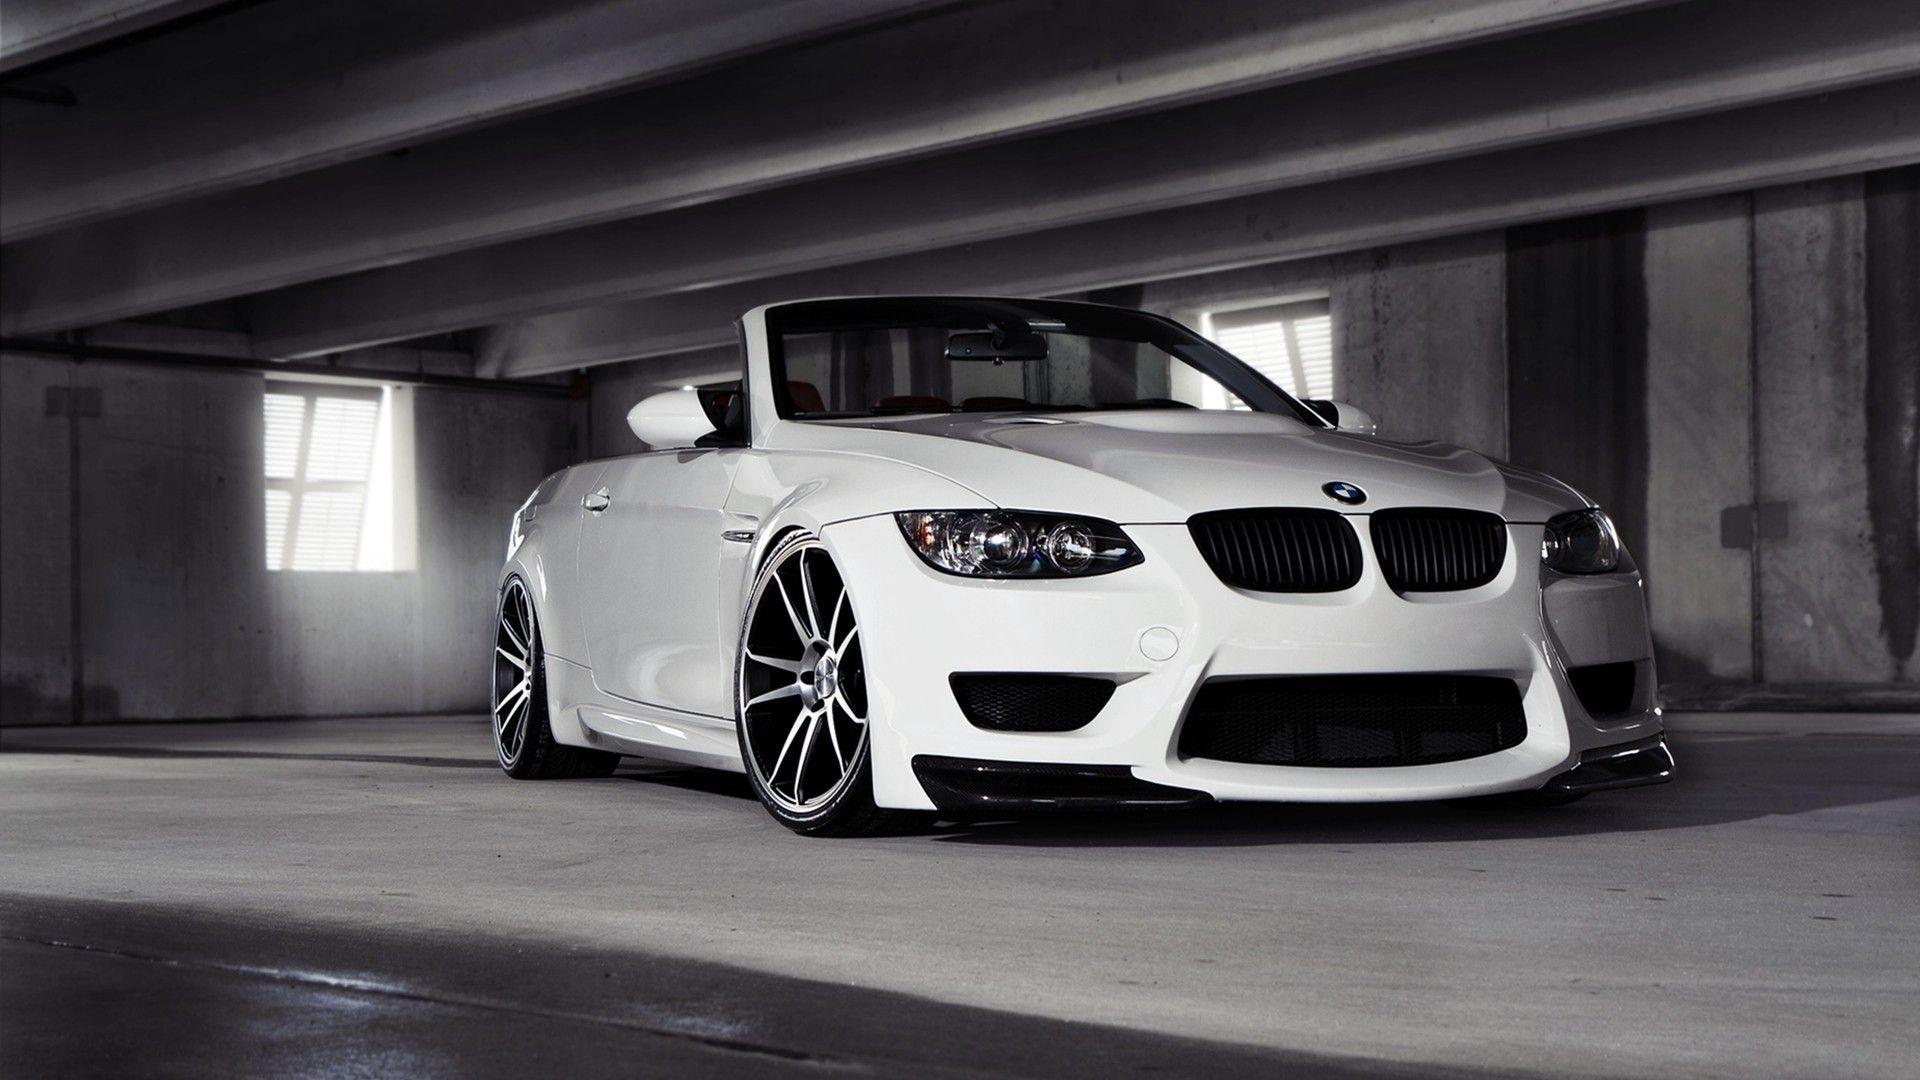 Wallpapers For > Bmw M3 Coupe Wallpapers Hd